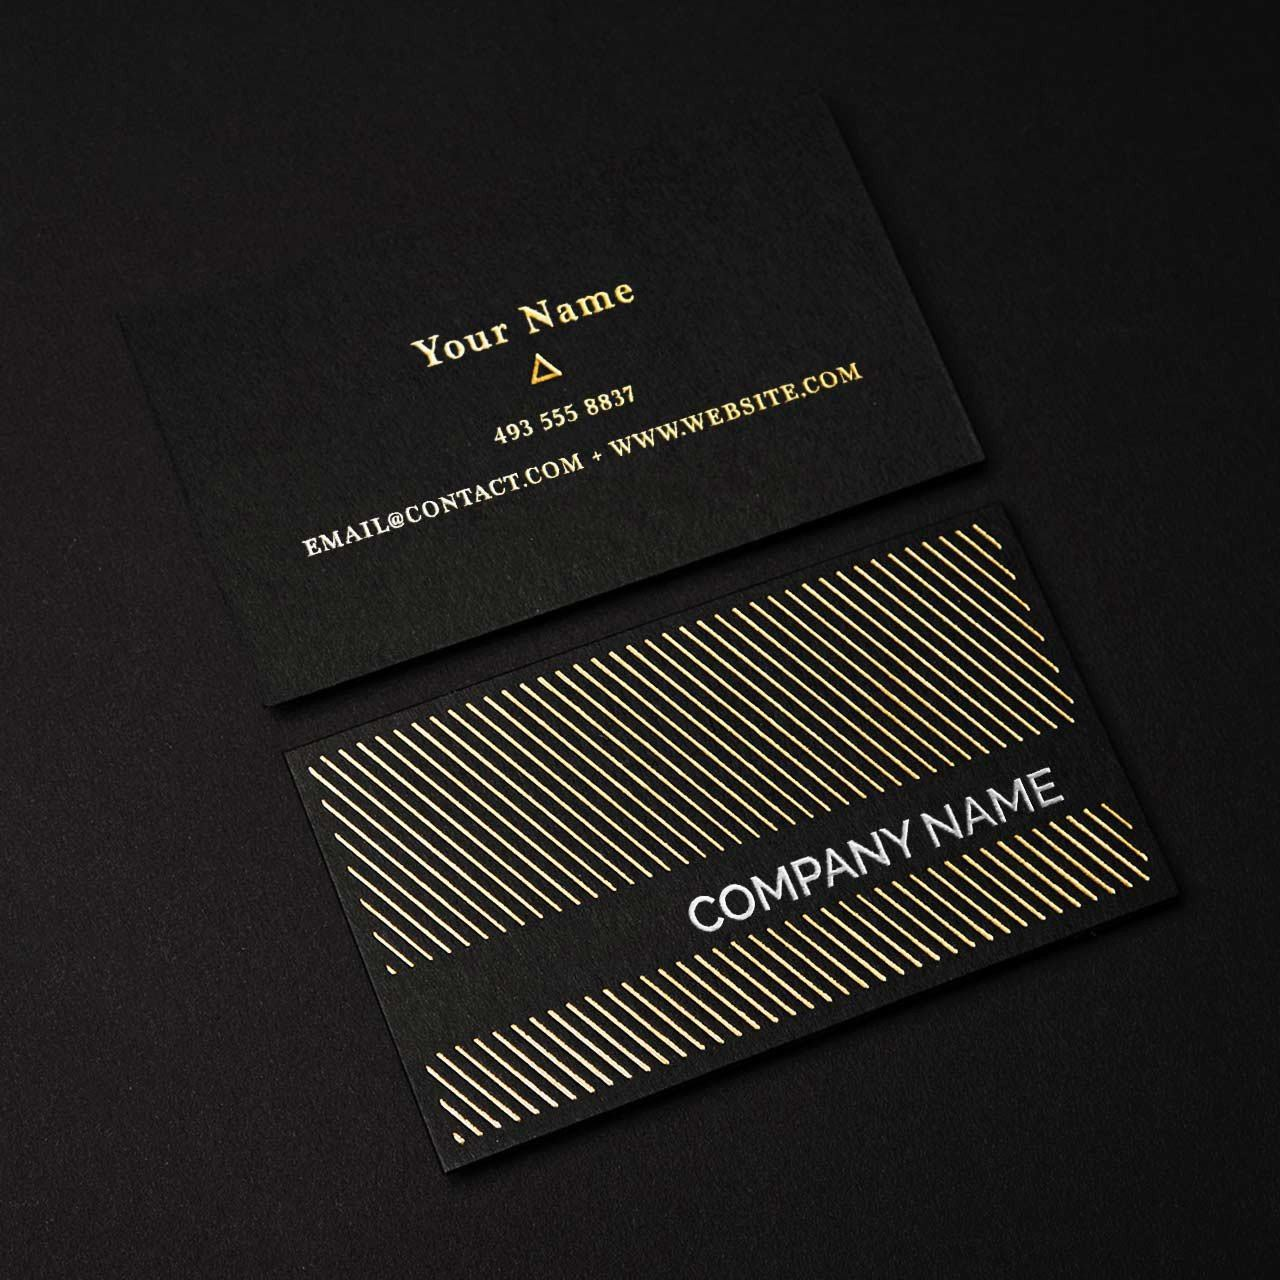 Fashioned Vip Business Cards Crest | Egy 4 Konami